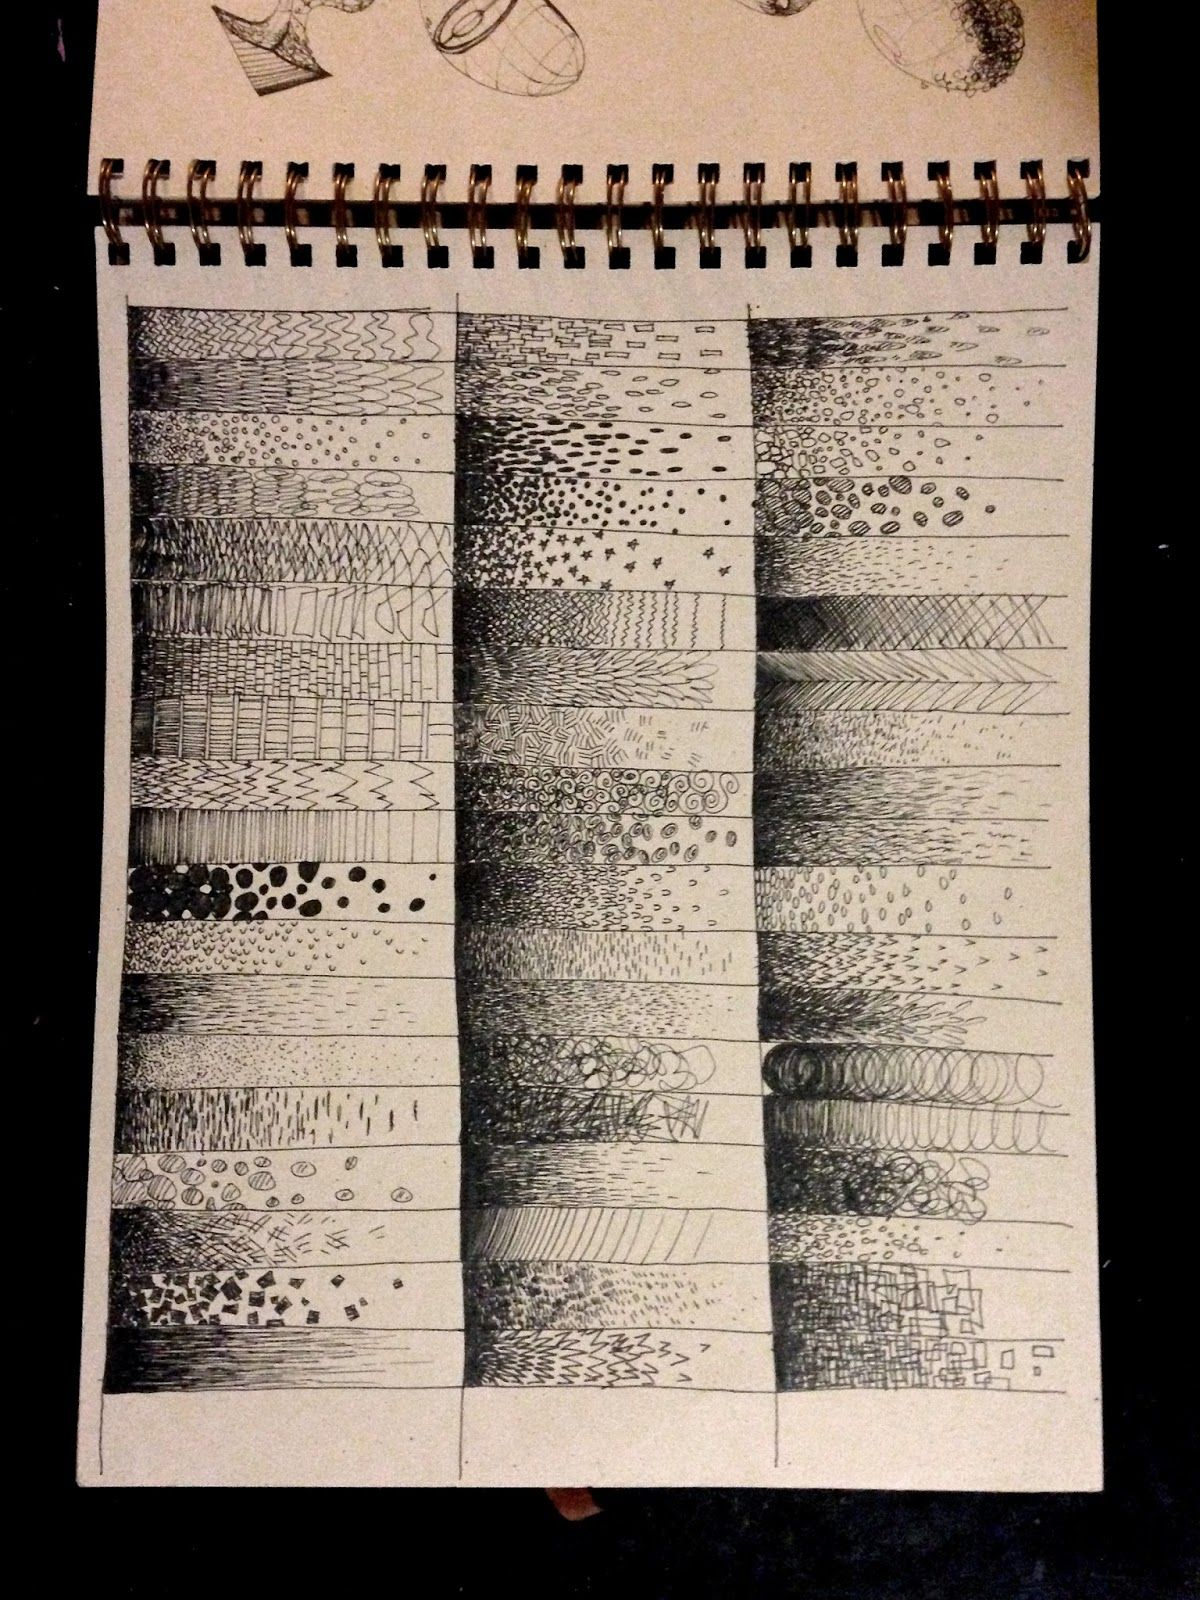 Griselda sastrawinata tuesday tips drawing with pen from